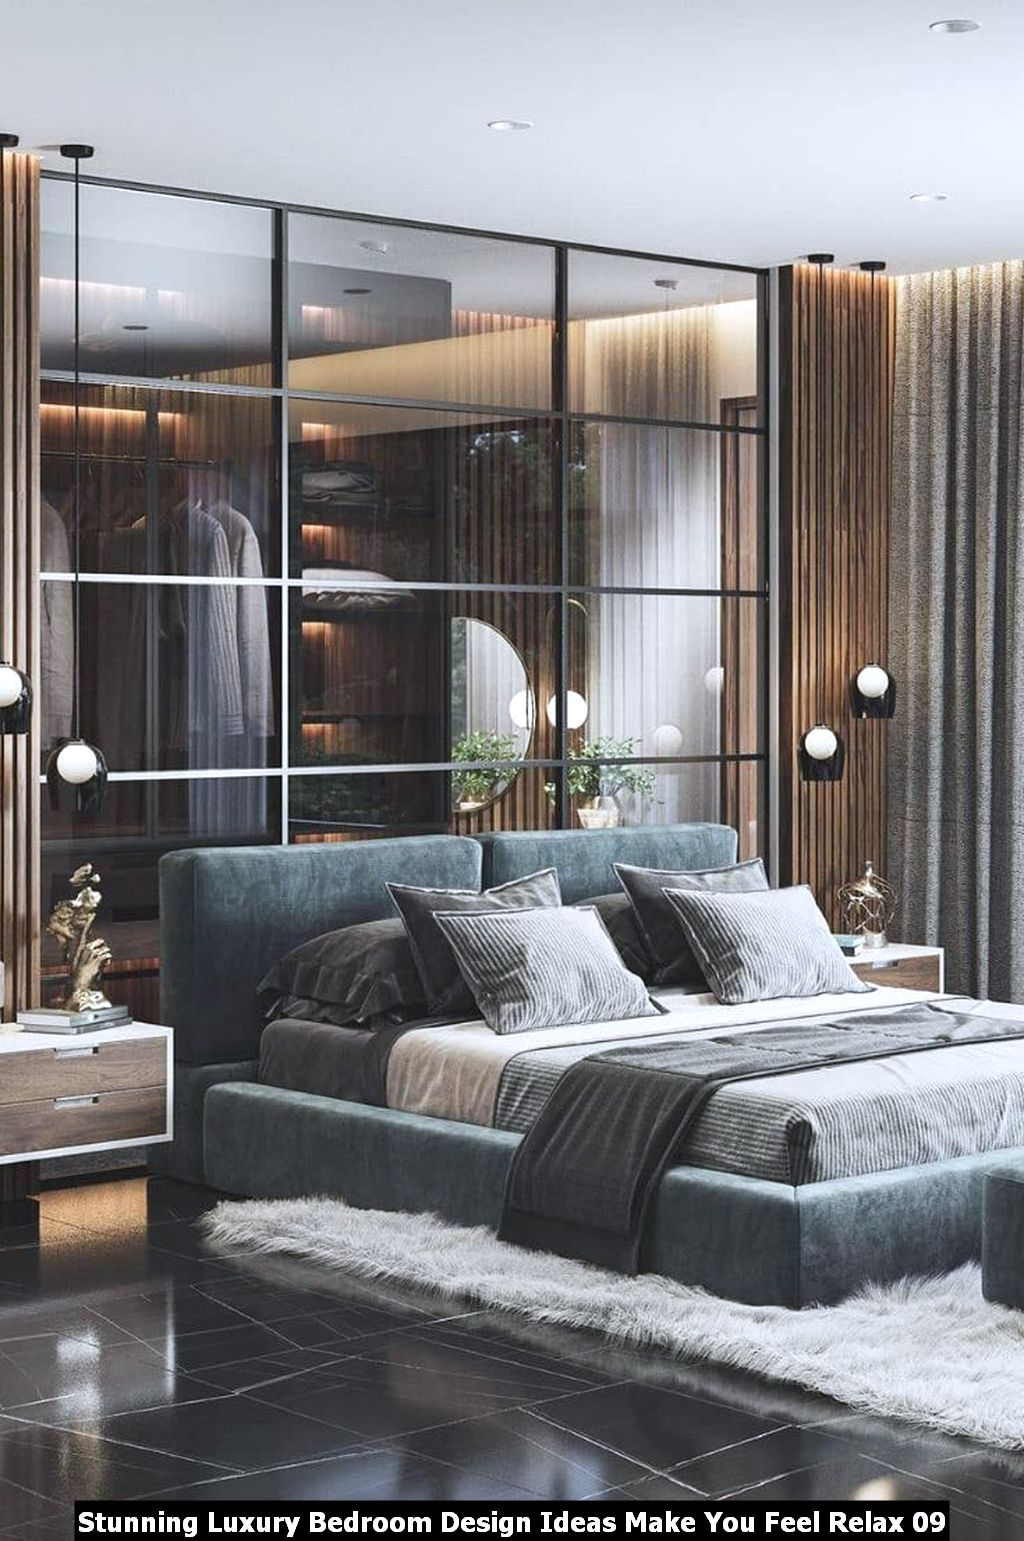 Stunning Luxury Bedroom Design Ideas Make You Feel Relax 09